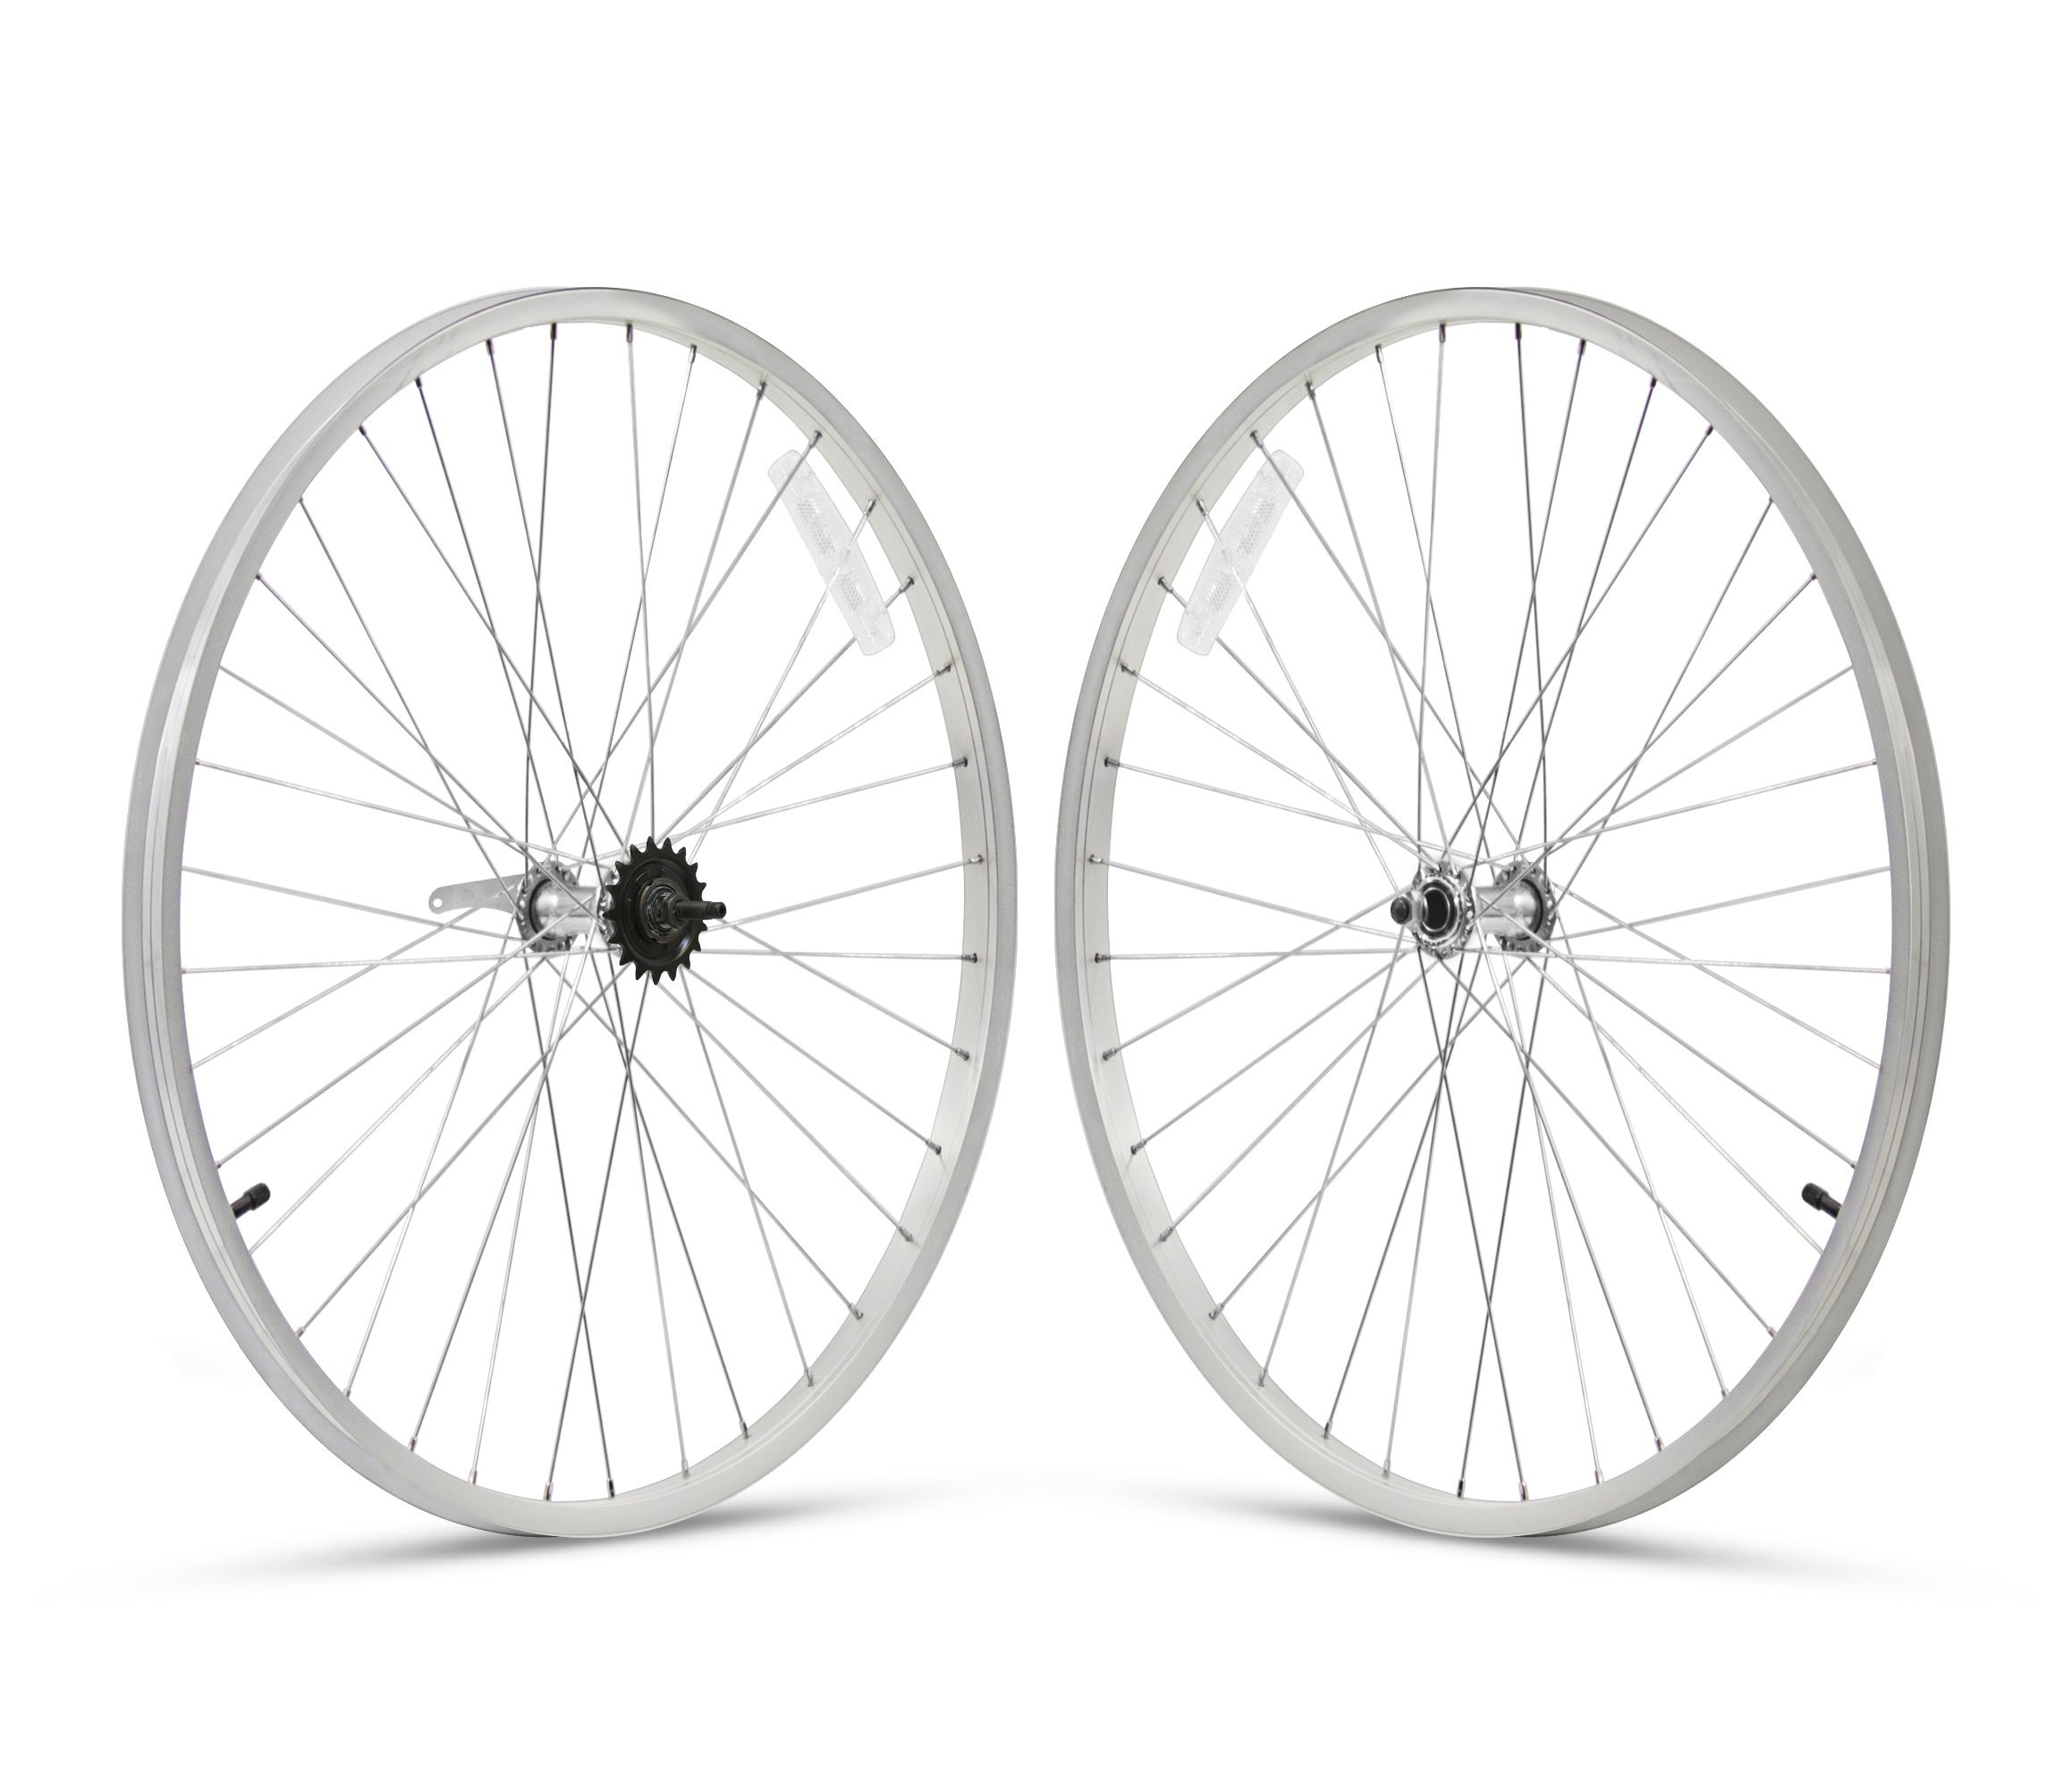 Firmstrong 3-Speed Beach Cruiser Bicycle Wheelset, Front/Rear, Silver, 26'' by Firmstrong